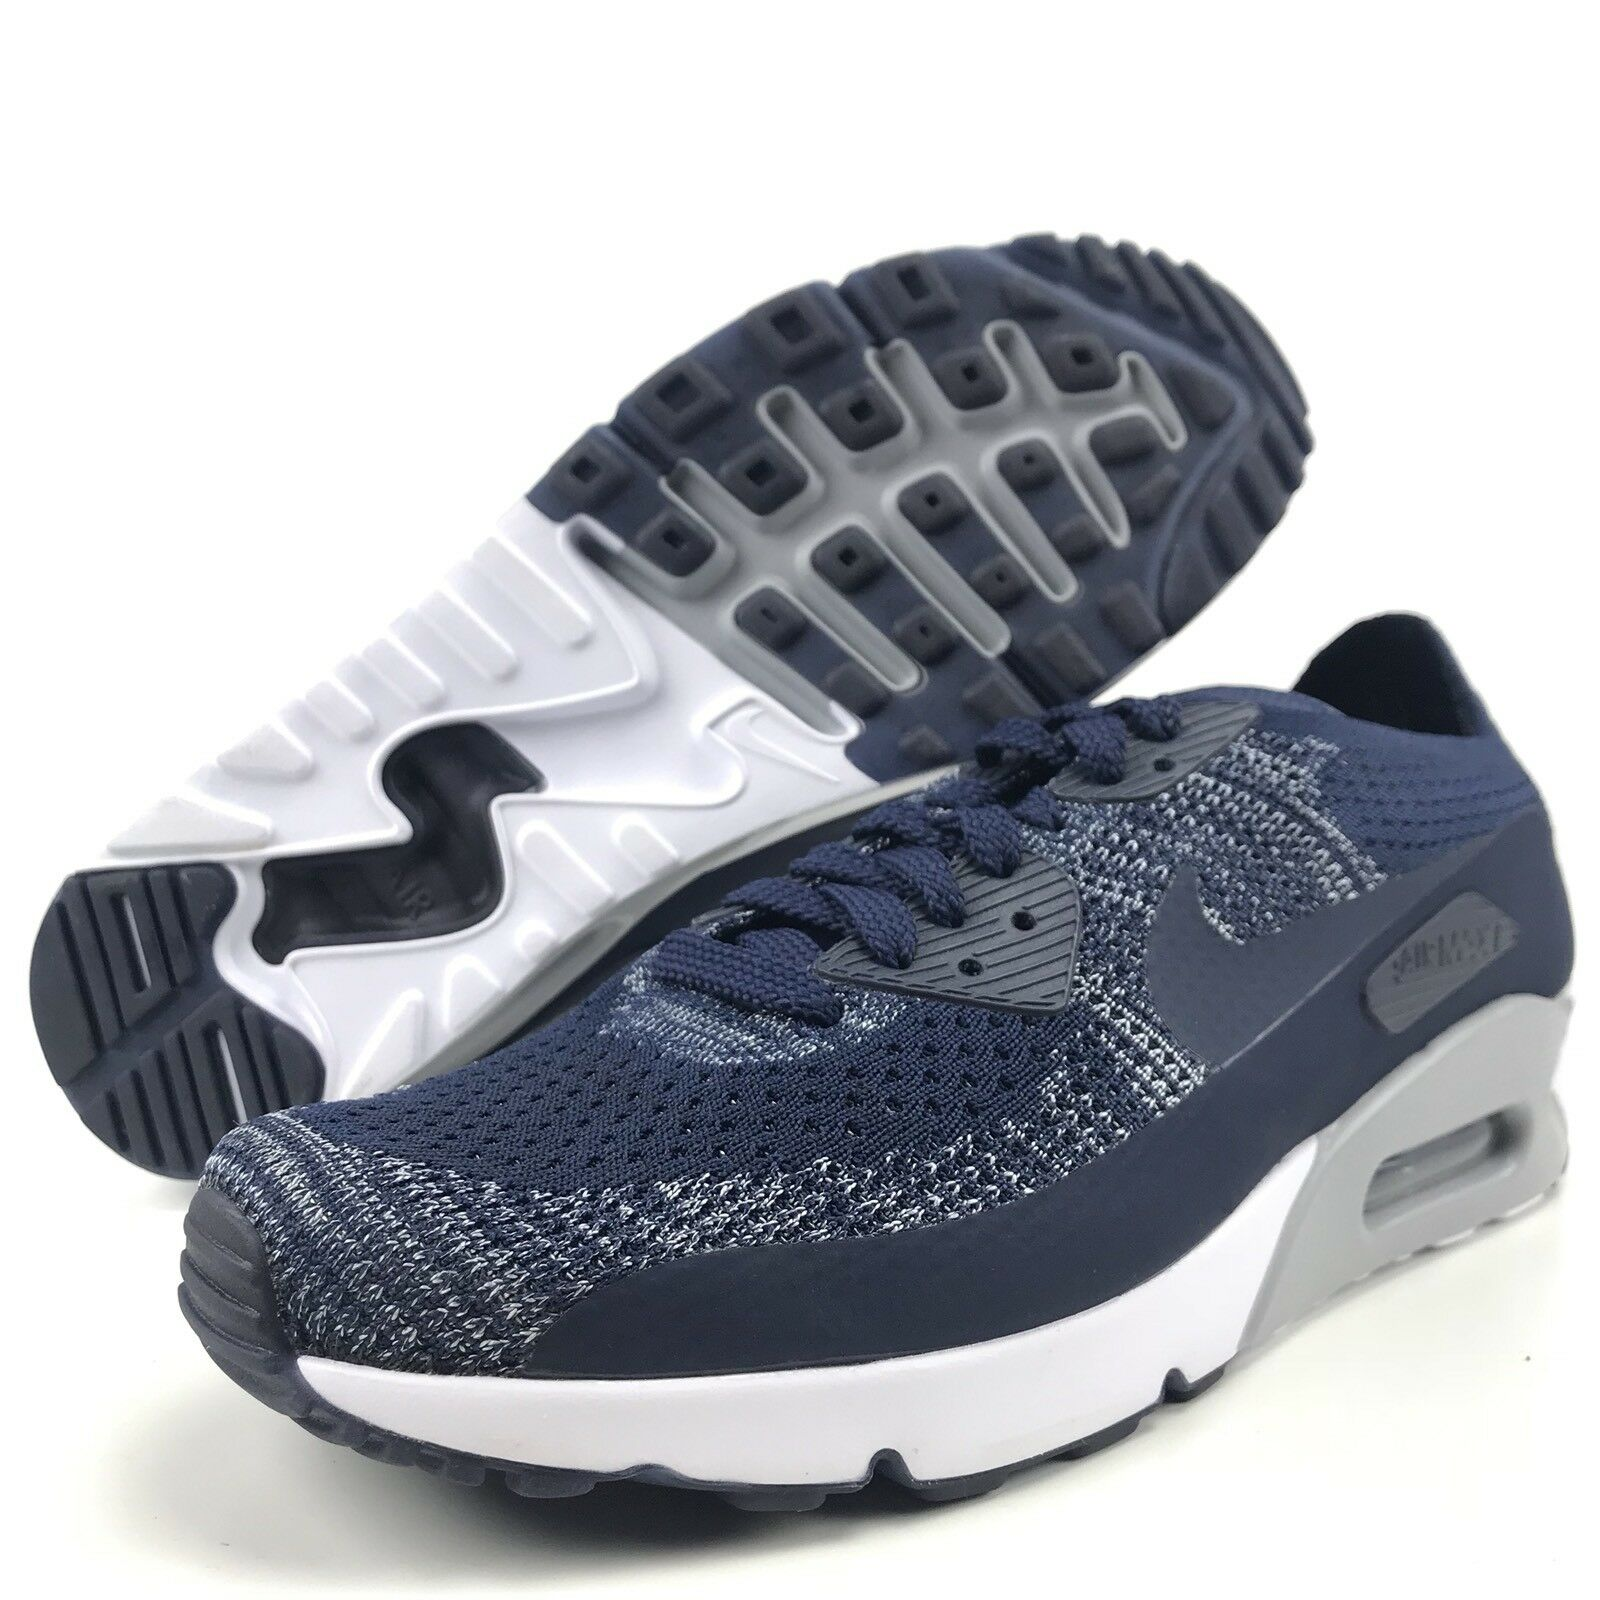 Nike Air Max Ultra 2.0 Flynit Size 9 Mens Running shoes College Navy White New